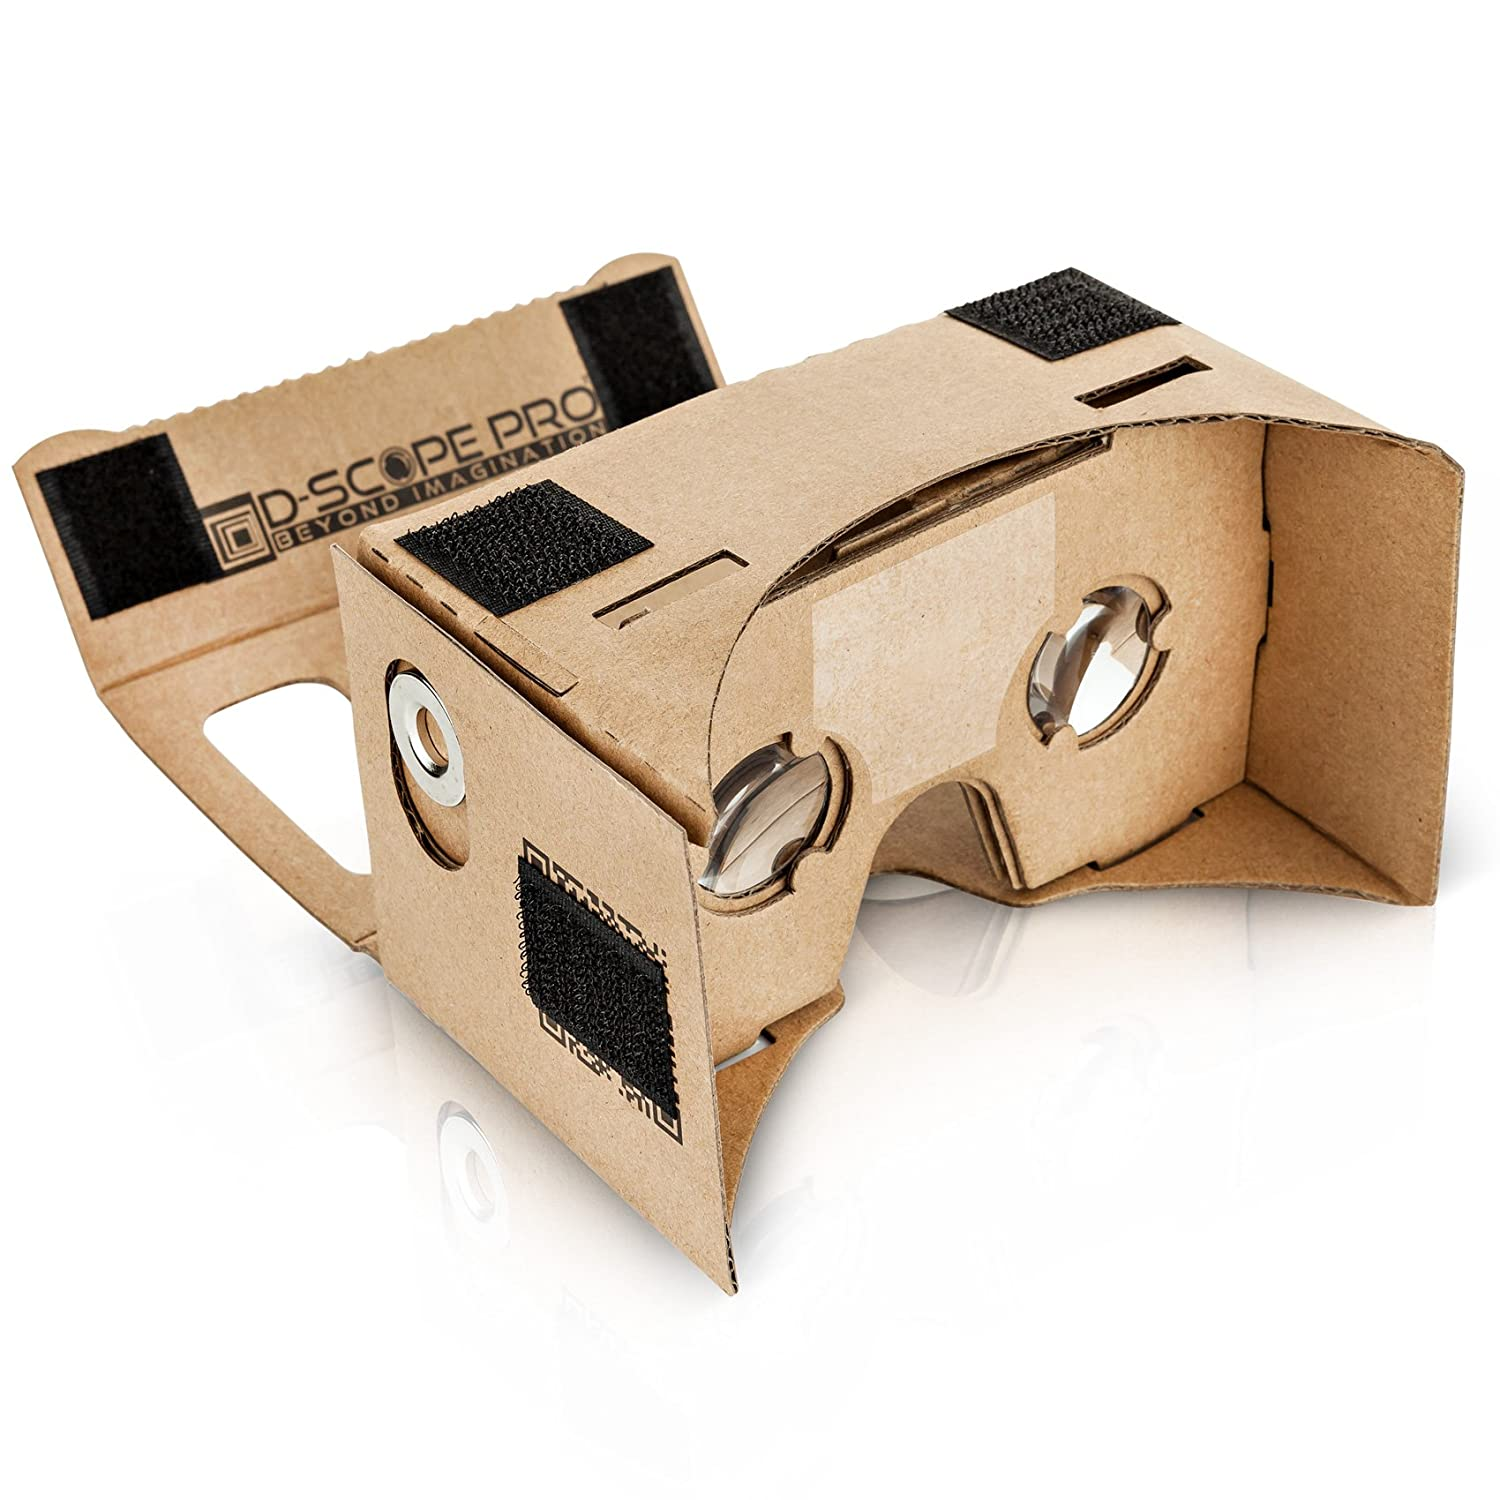 076cf654725 D-scope Pro Google Cardboard Kit with Straps 3D Virtual Reality Compatible  with Android   Apple Easy Setup Instructions Machine Cut Quality  Construction ...